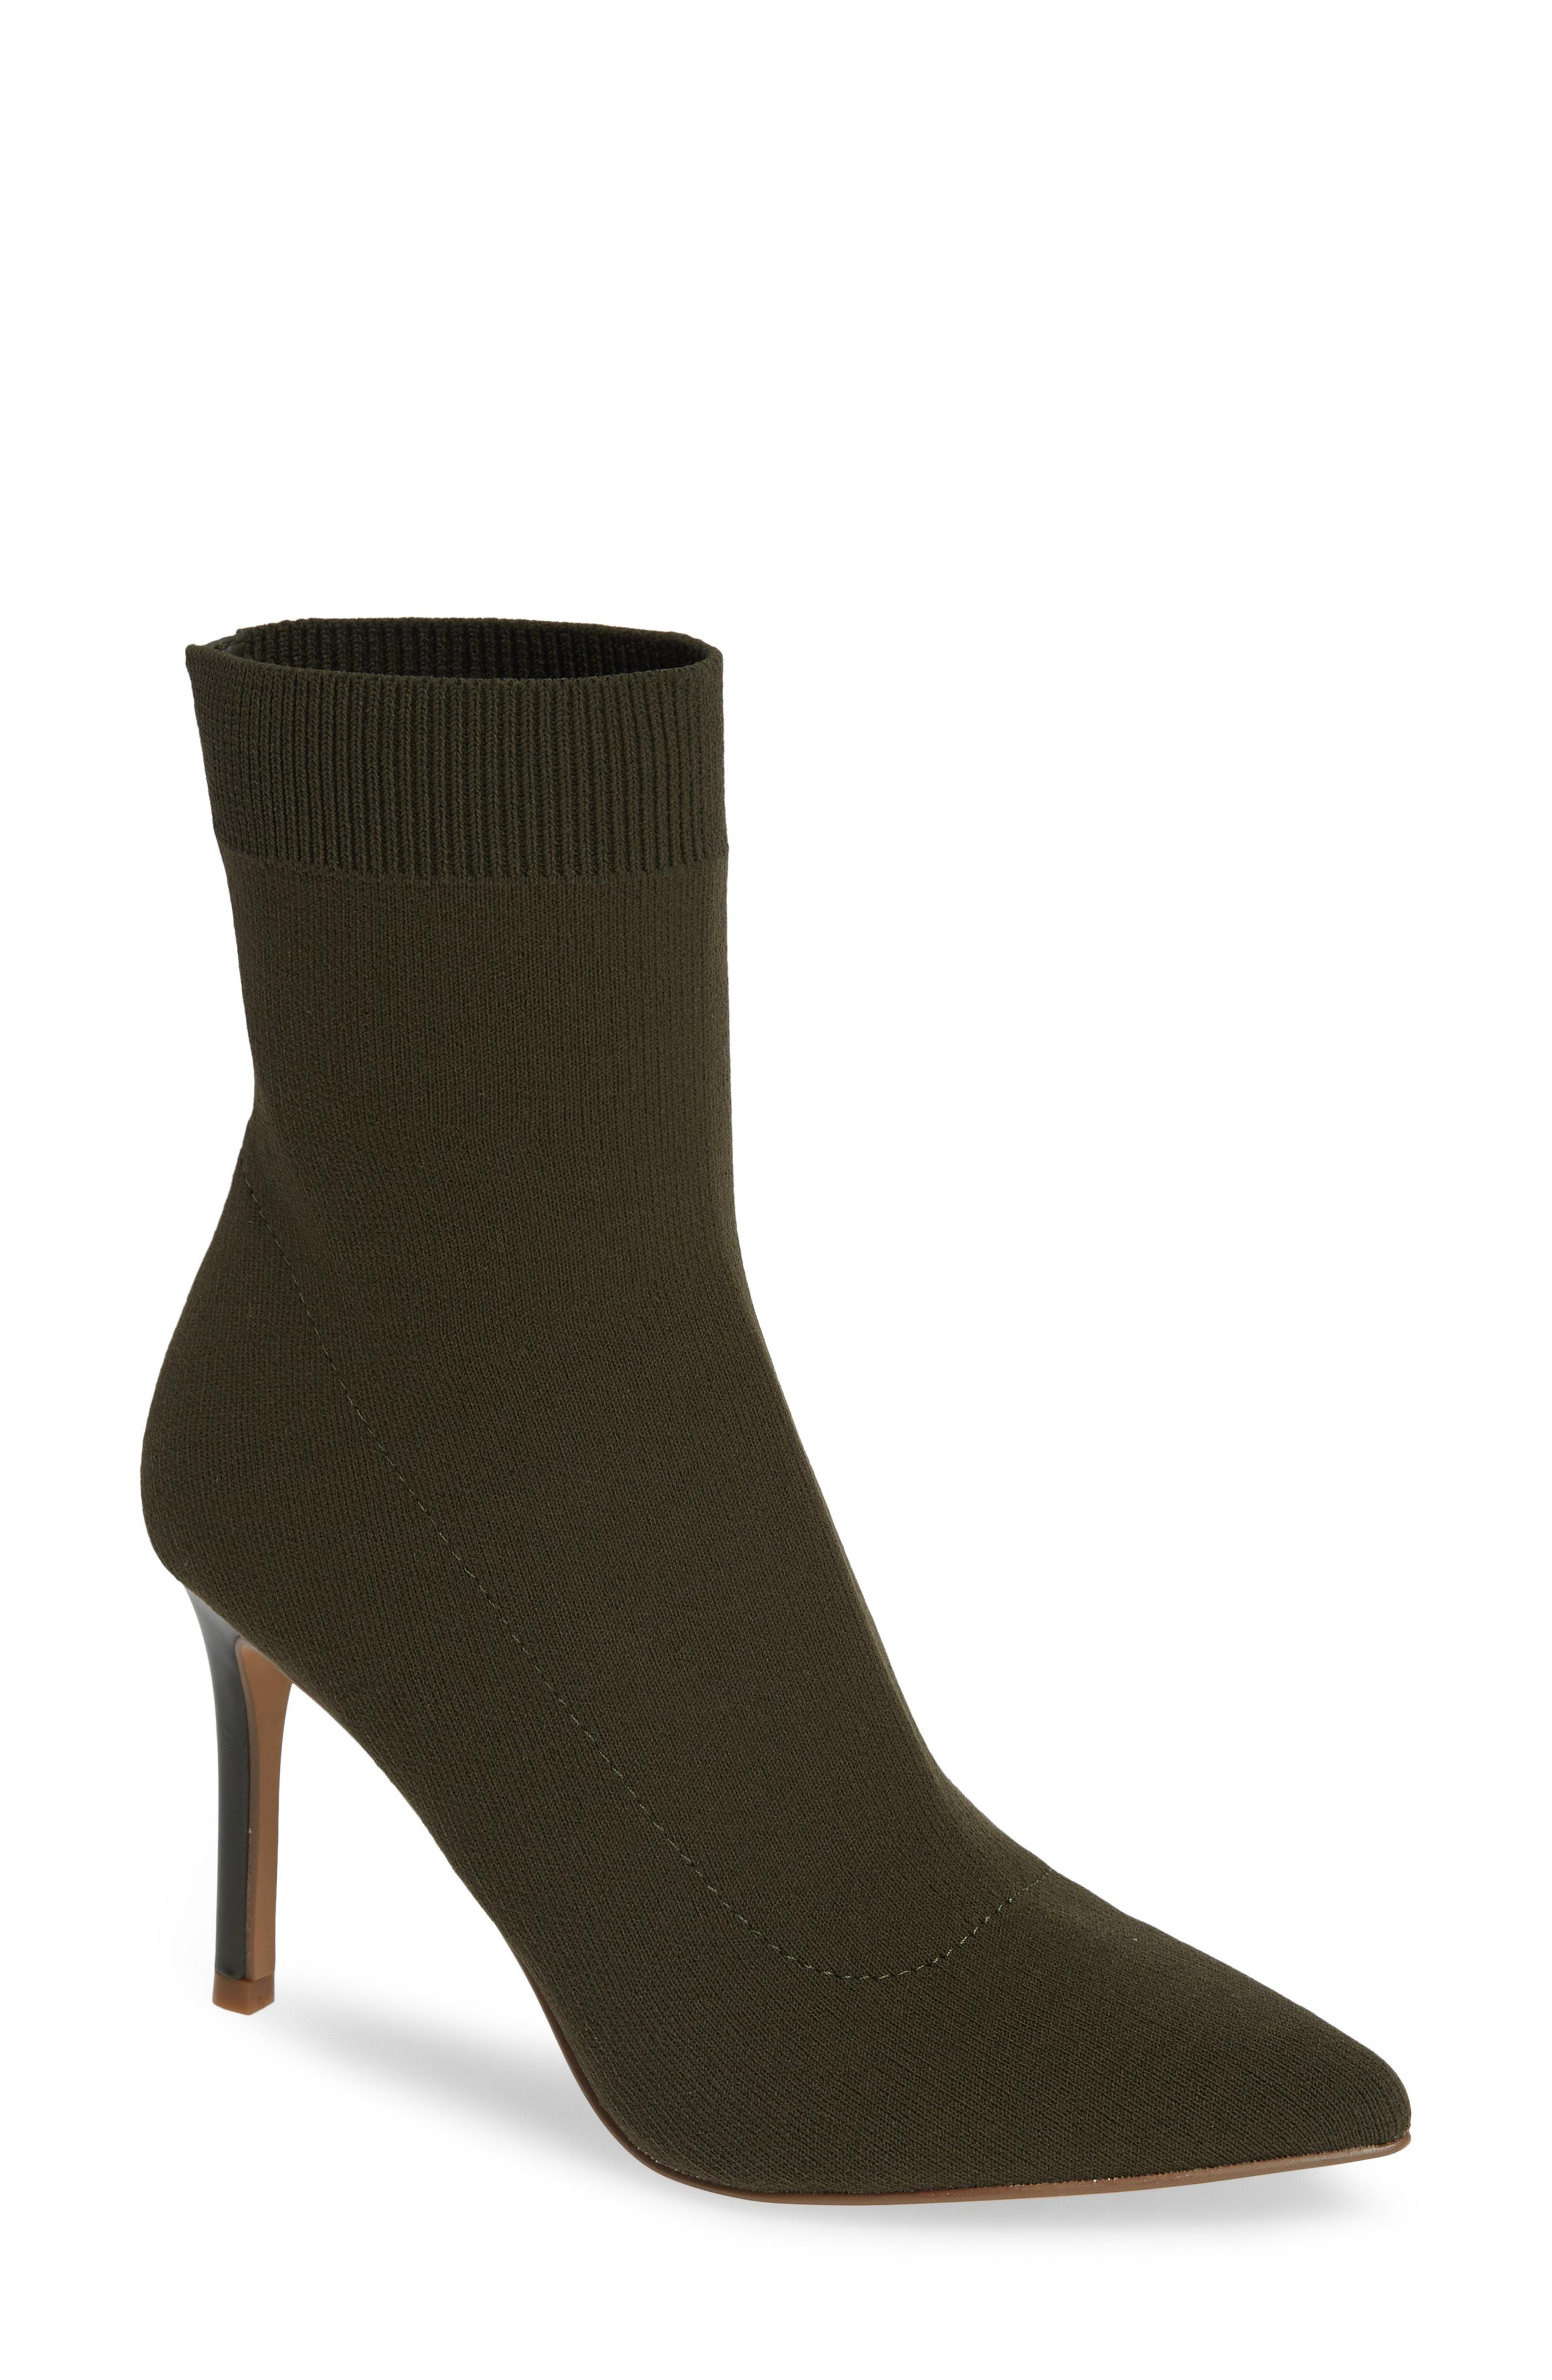 71d6d9a243f Lyst - Steve Madden Claire Bootie in Green